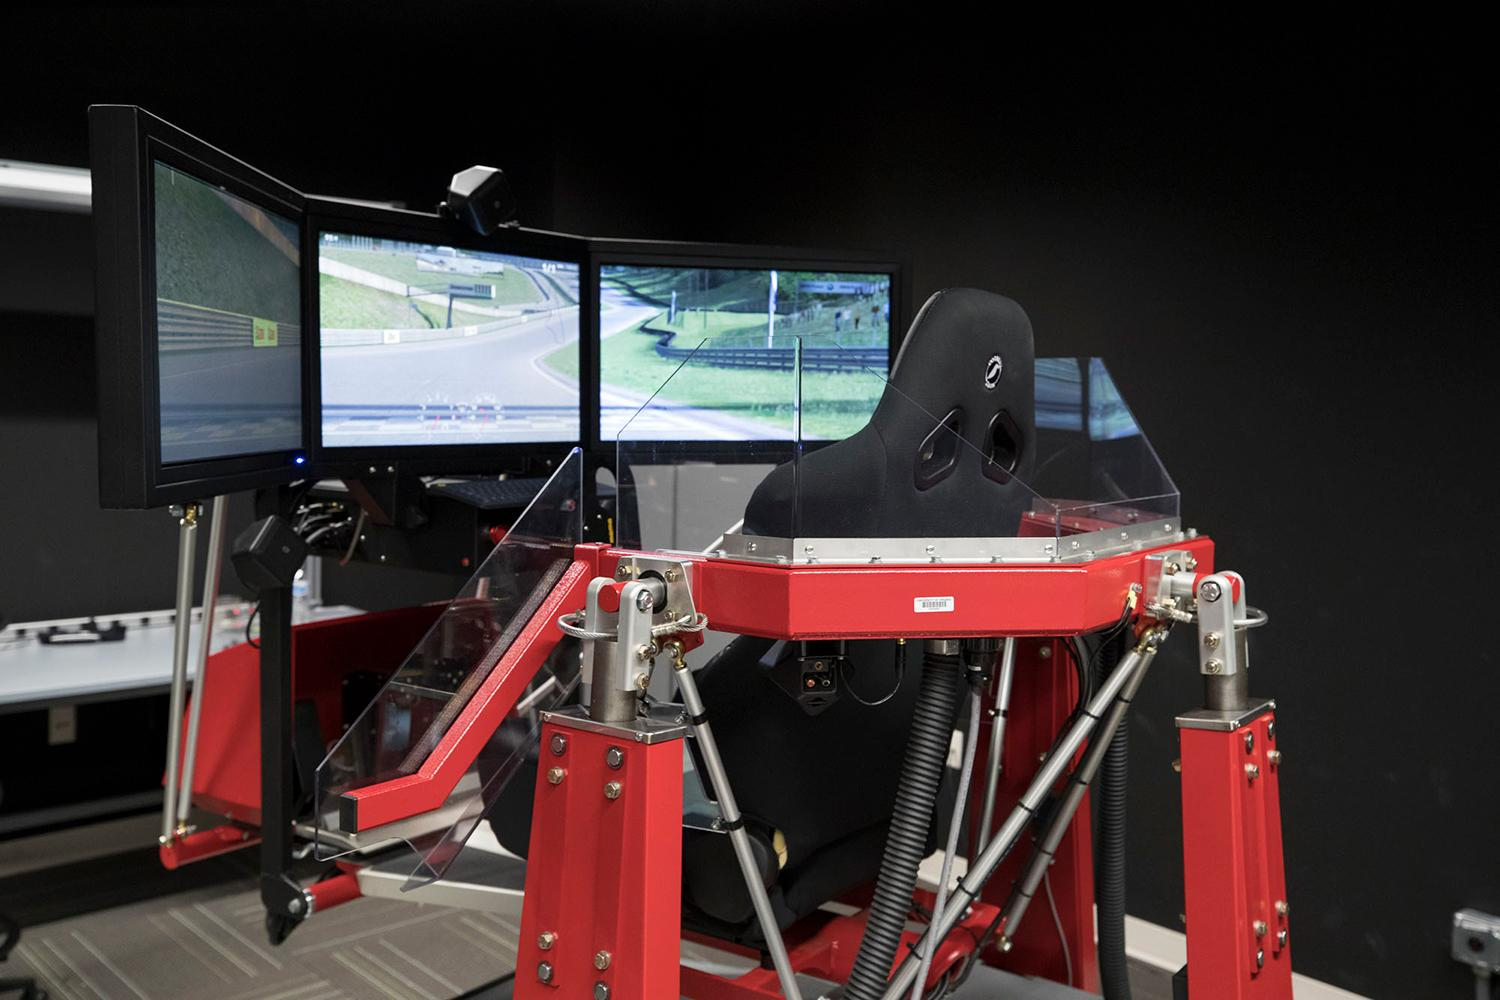 Using a simulator, for now, UVA researchers are probing the factors that lead people to feel more or less comfortable with letting go of the steering wheel.